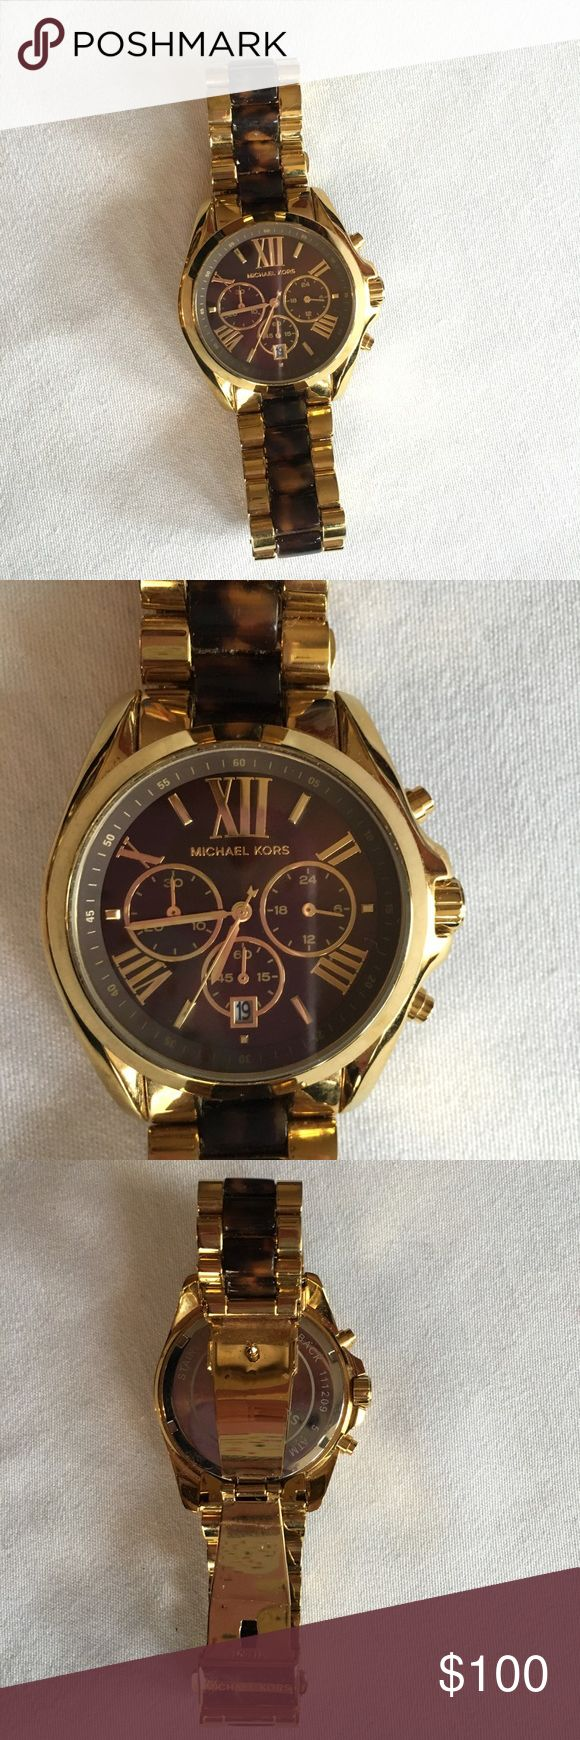 Michael Kors Gold & Tortoise watch Michael Kors gold watch with tortoise shell centre links, a brown dial and gold-tone baton hour markers and hands. Other features include a date function, three sub-dials and alternating Roman numeral hour markers. Perfect condition! Michael Kors Accessories Watches